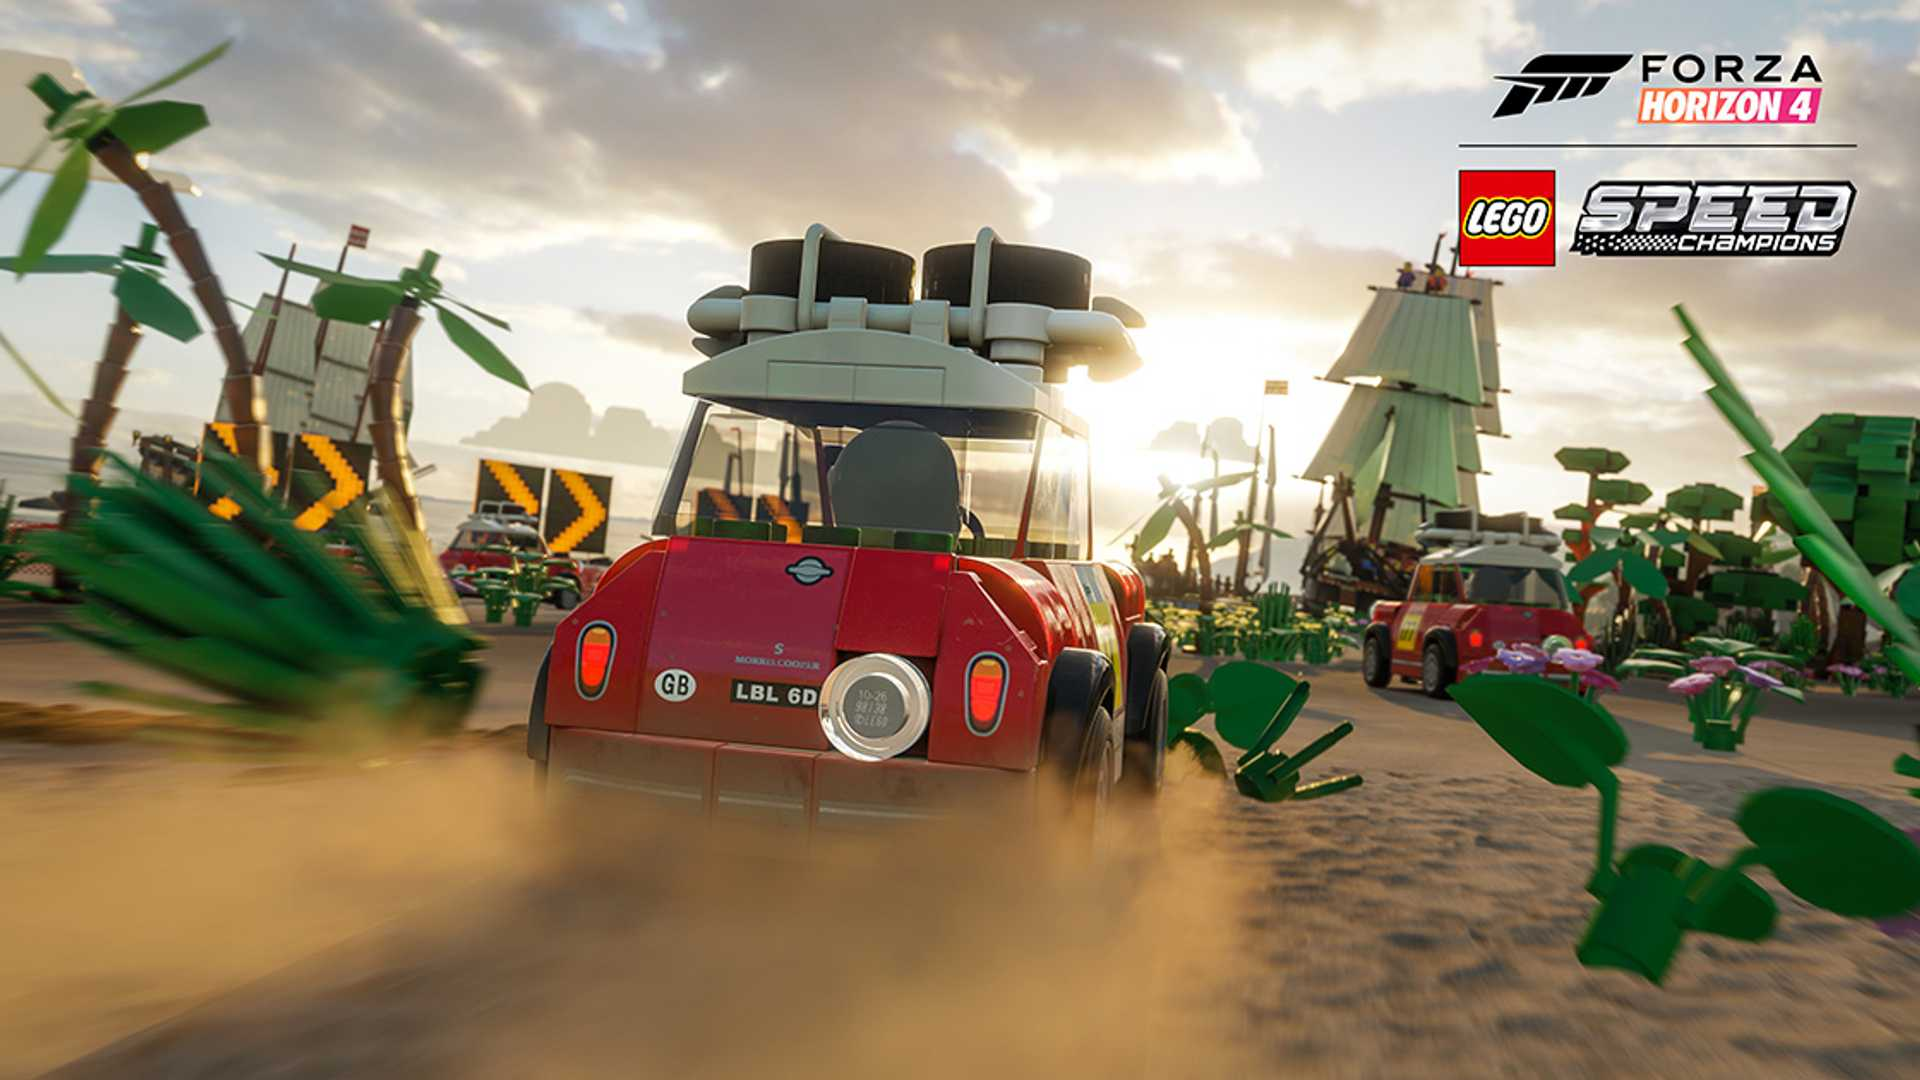 forza-horizon-4-lego-speed-champions-6